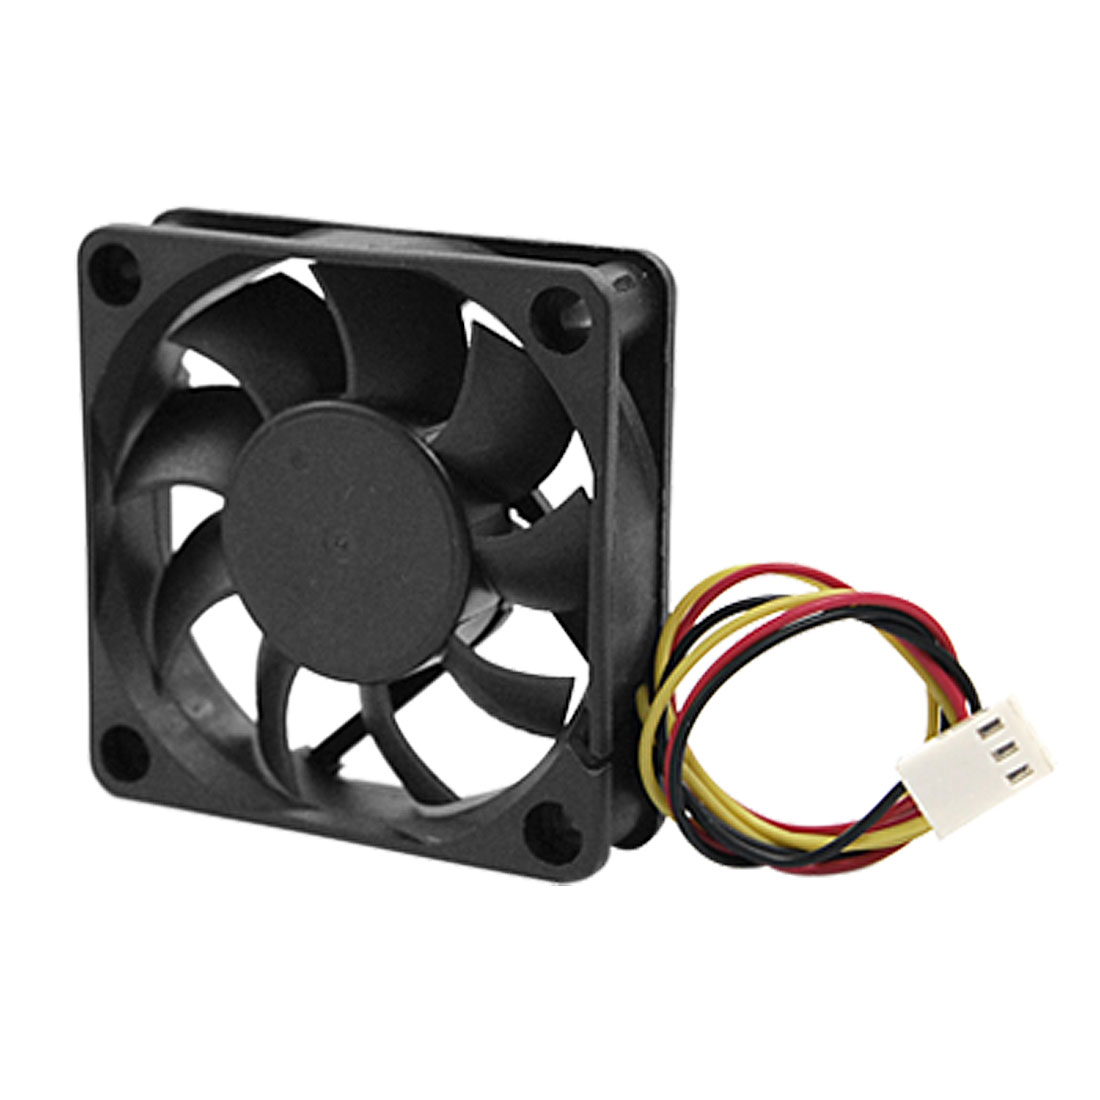 60mm x 15mm 6015 DC 12V 3 Terminals PC CPU Cooler Cooling Fan